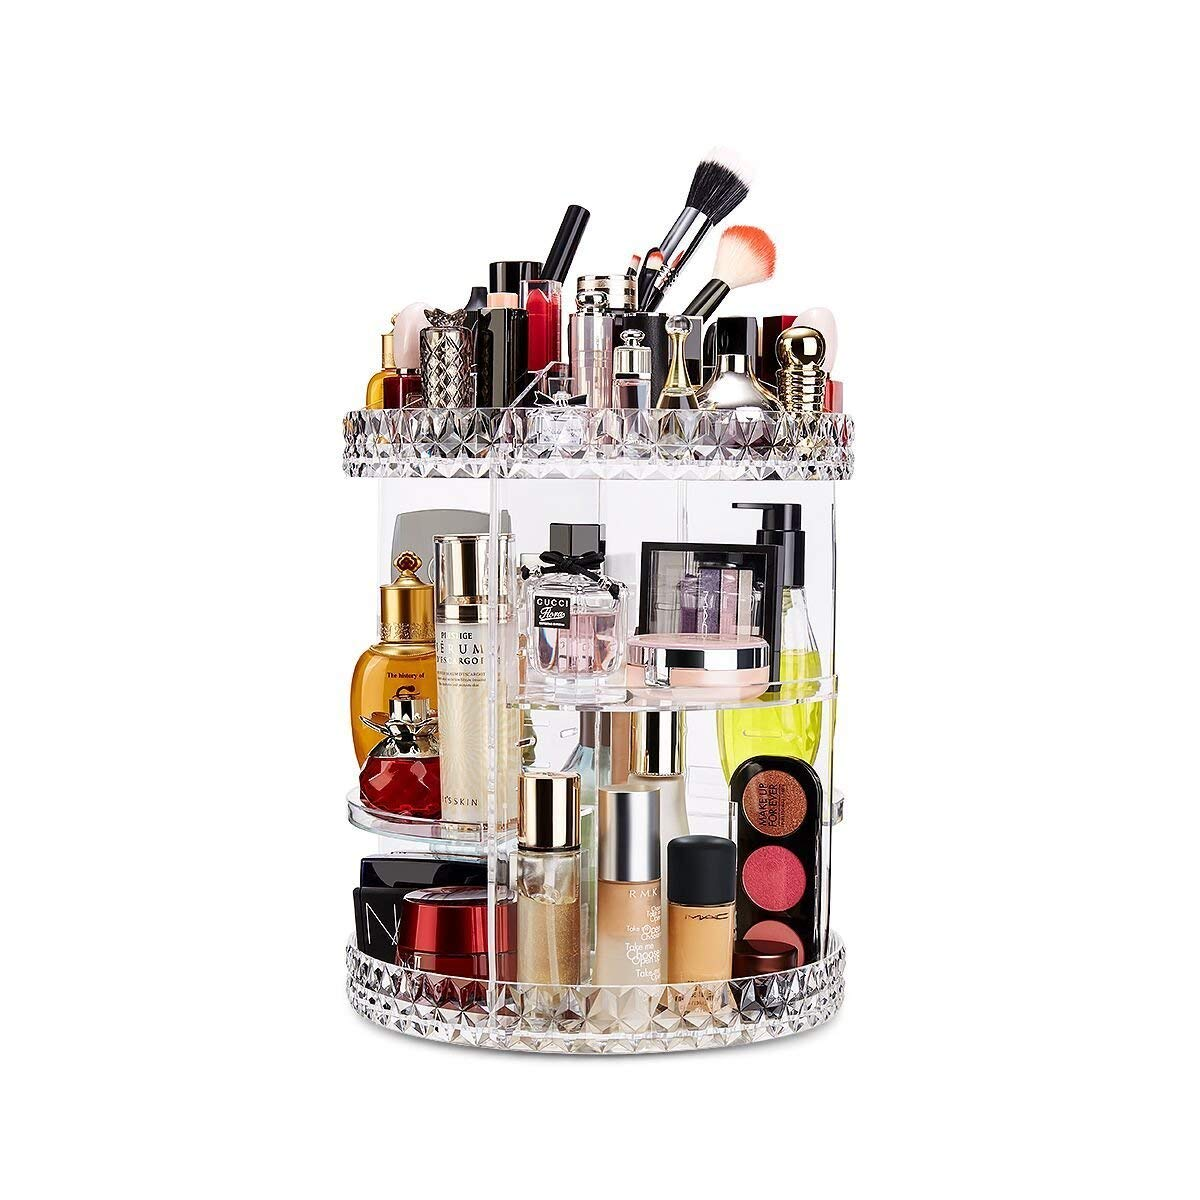 Rotating Makeup Organizer 360-Degree Rotating Adjustable Multi-Function Acrylic Cosmetic Storage for Cosmetics, Toiletries, and More — Great for Vanity, Bathroom, Bedroom, Closet, Kitchen (Acrylic)